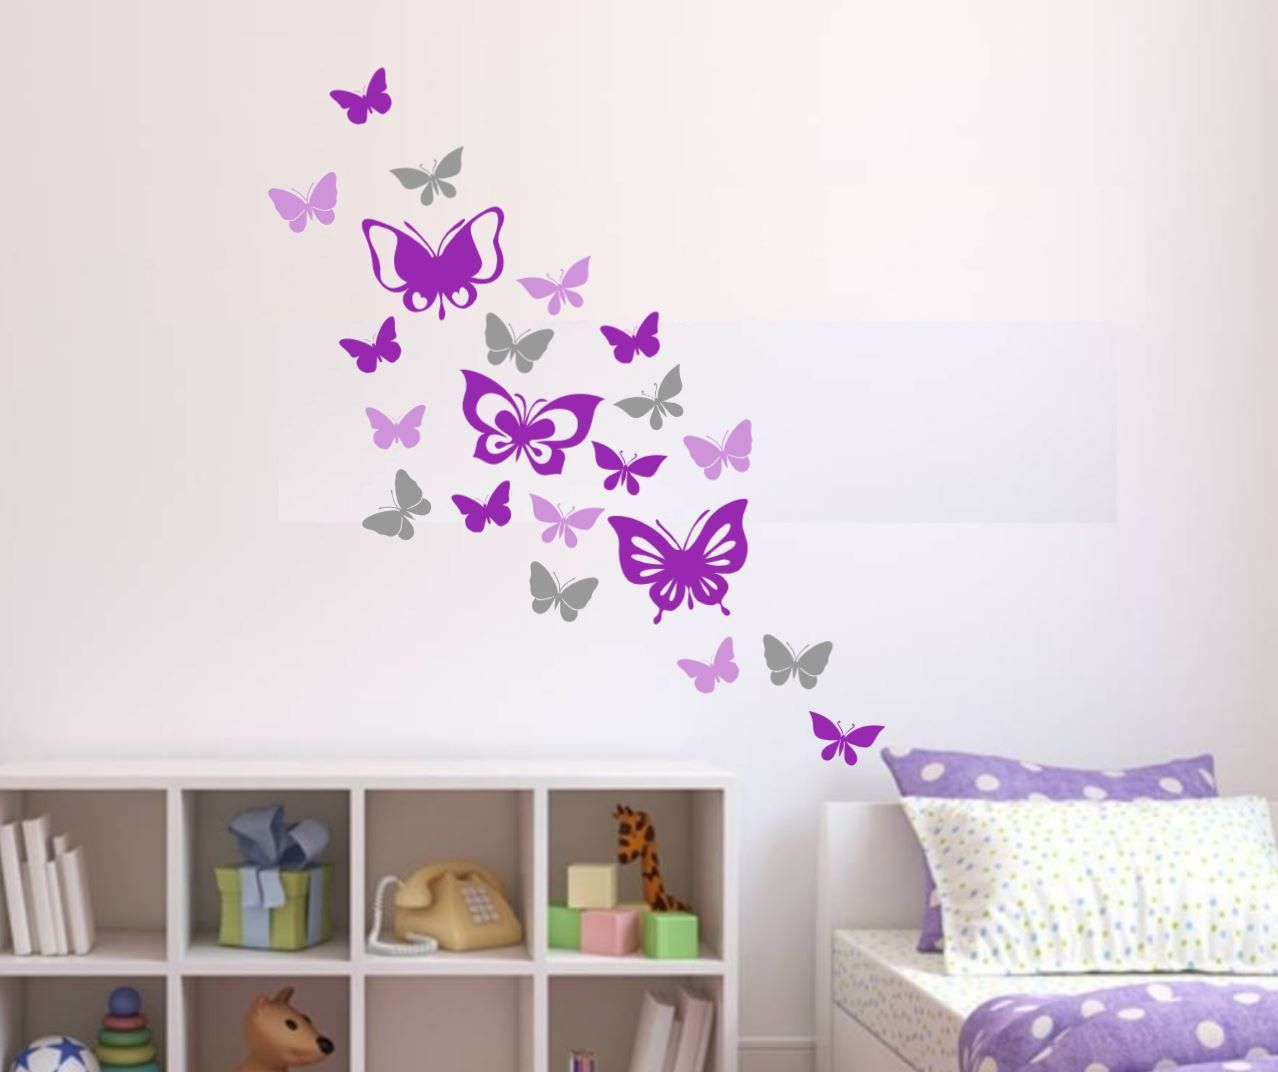 Peel And Stick Butterfly Wall Decals In 2020 Butterfly Wall Decals Wall Decals Butterfly Wall